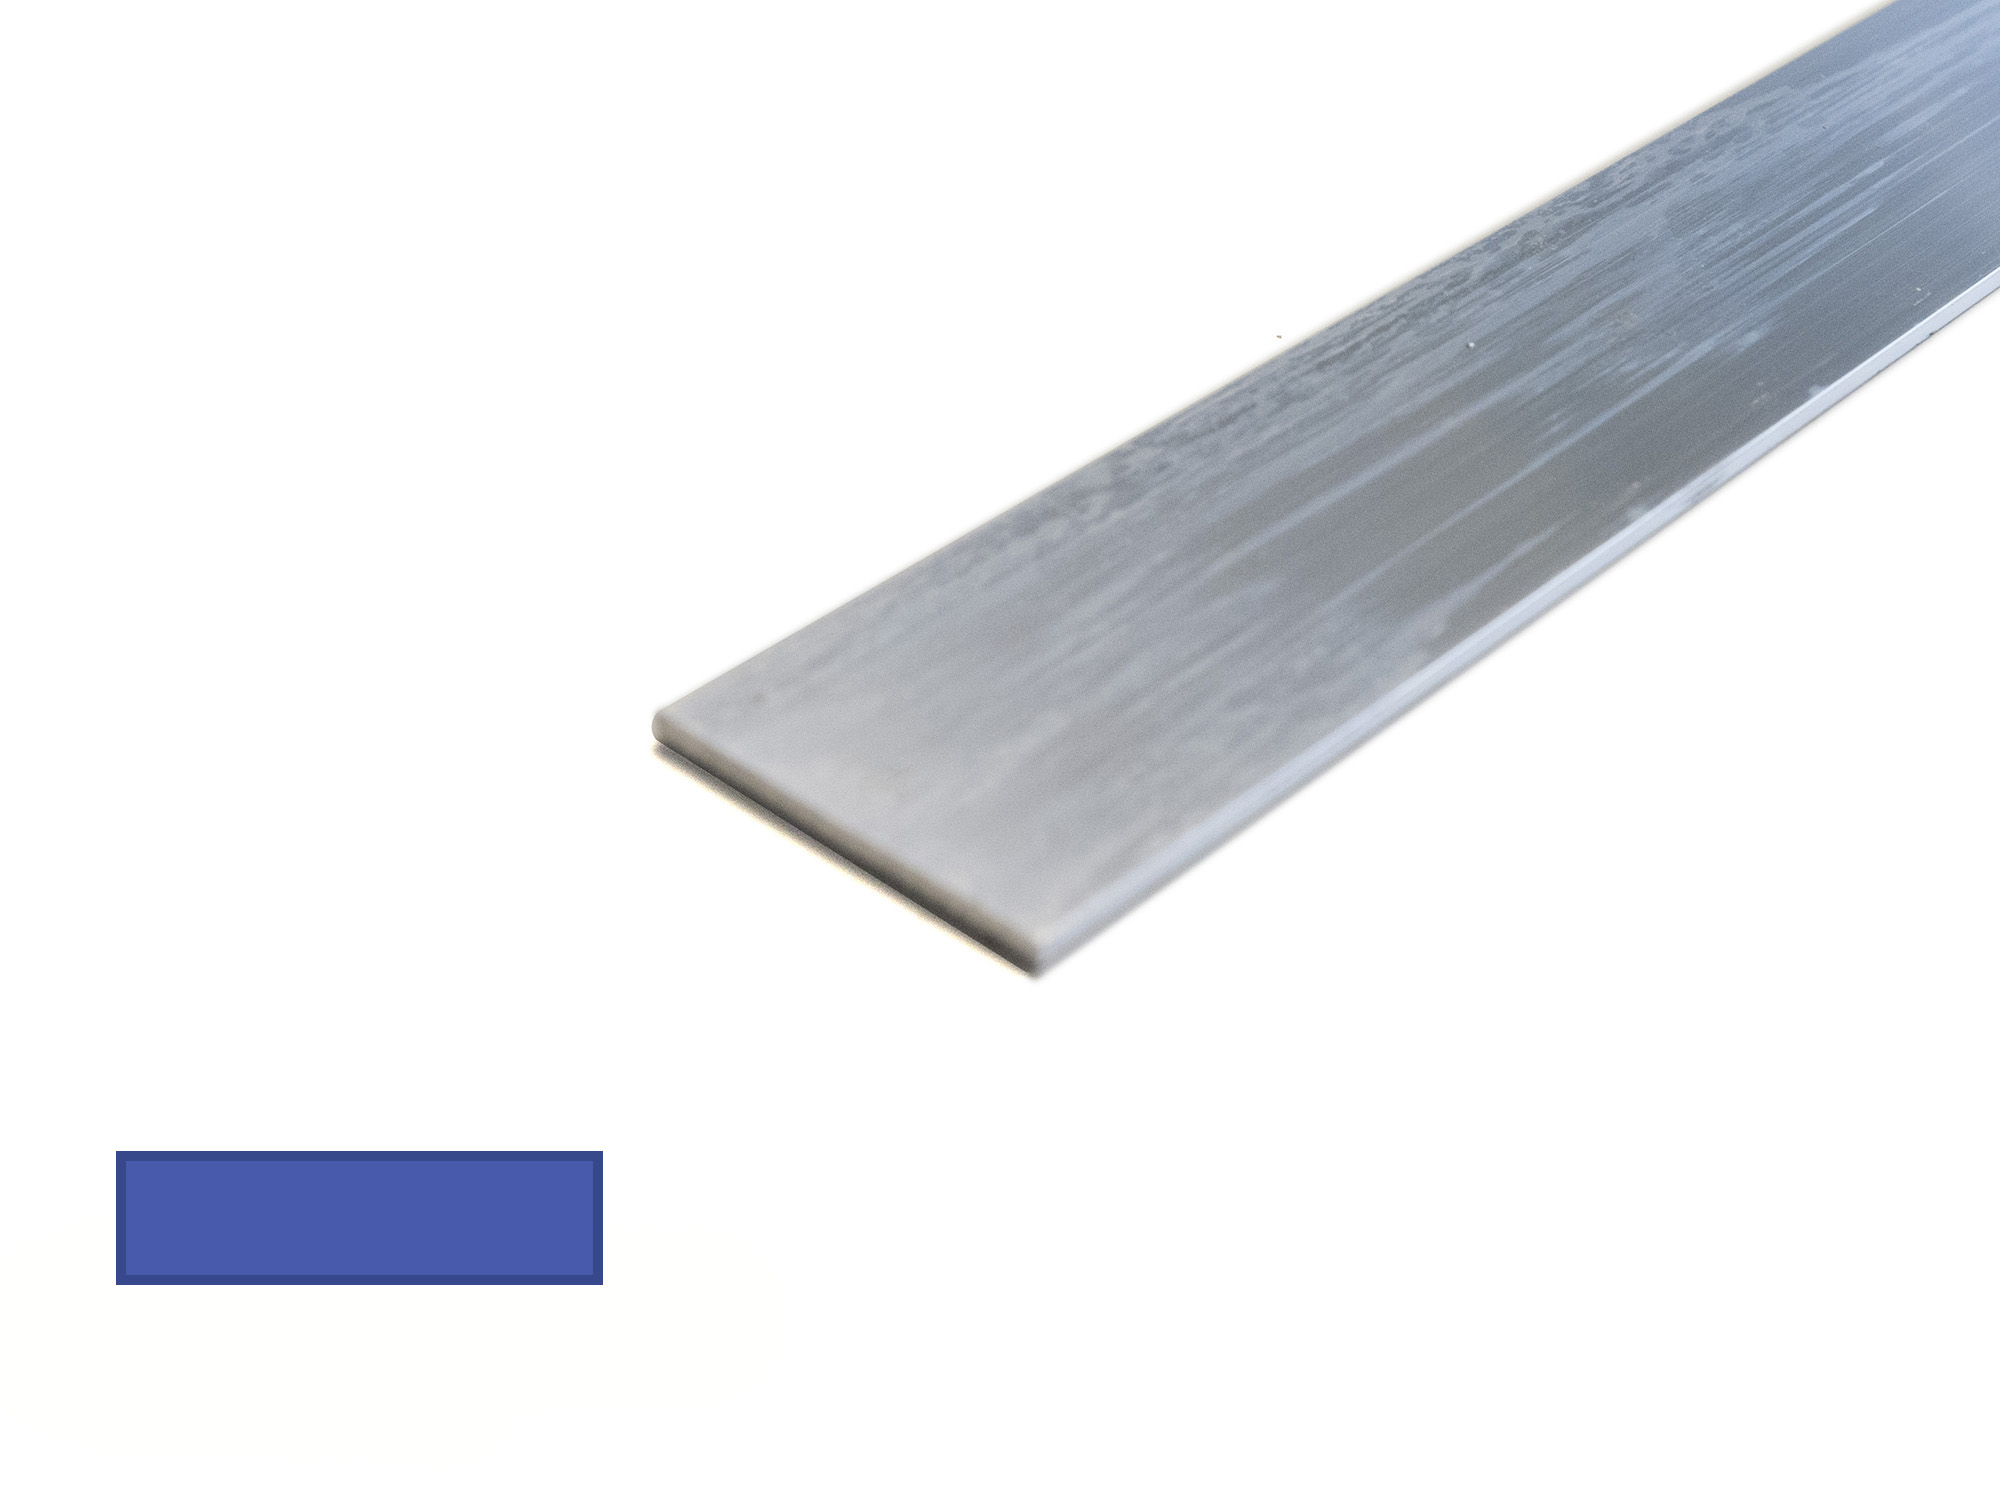 aluminium strip 20 x 6mm